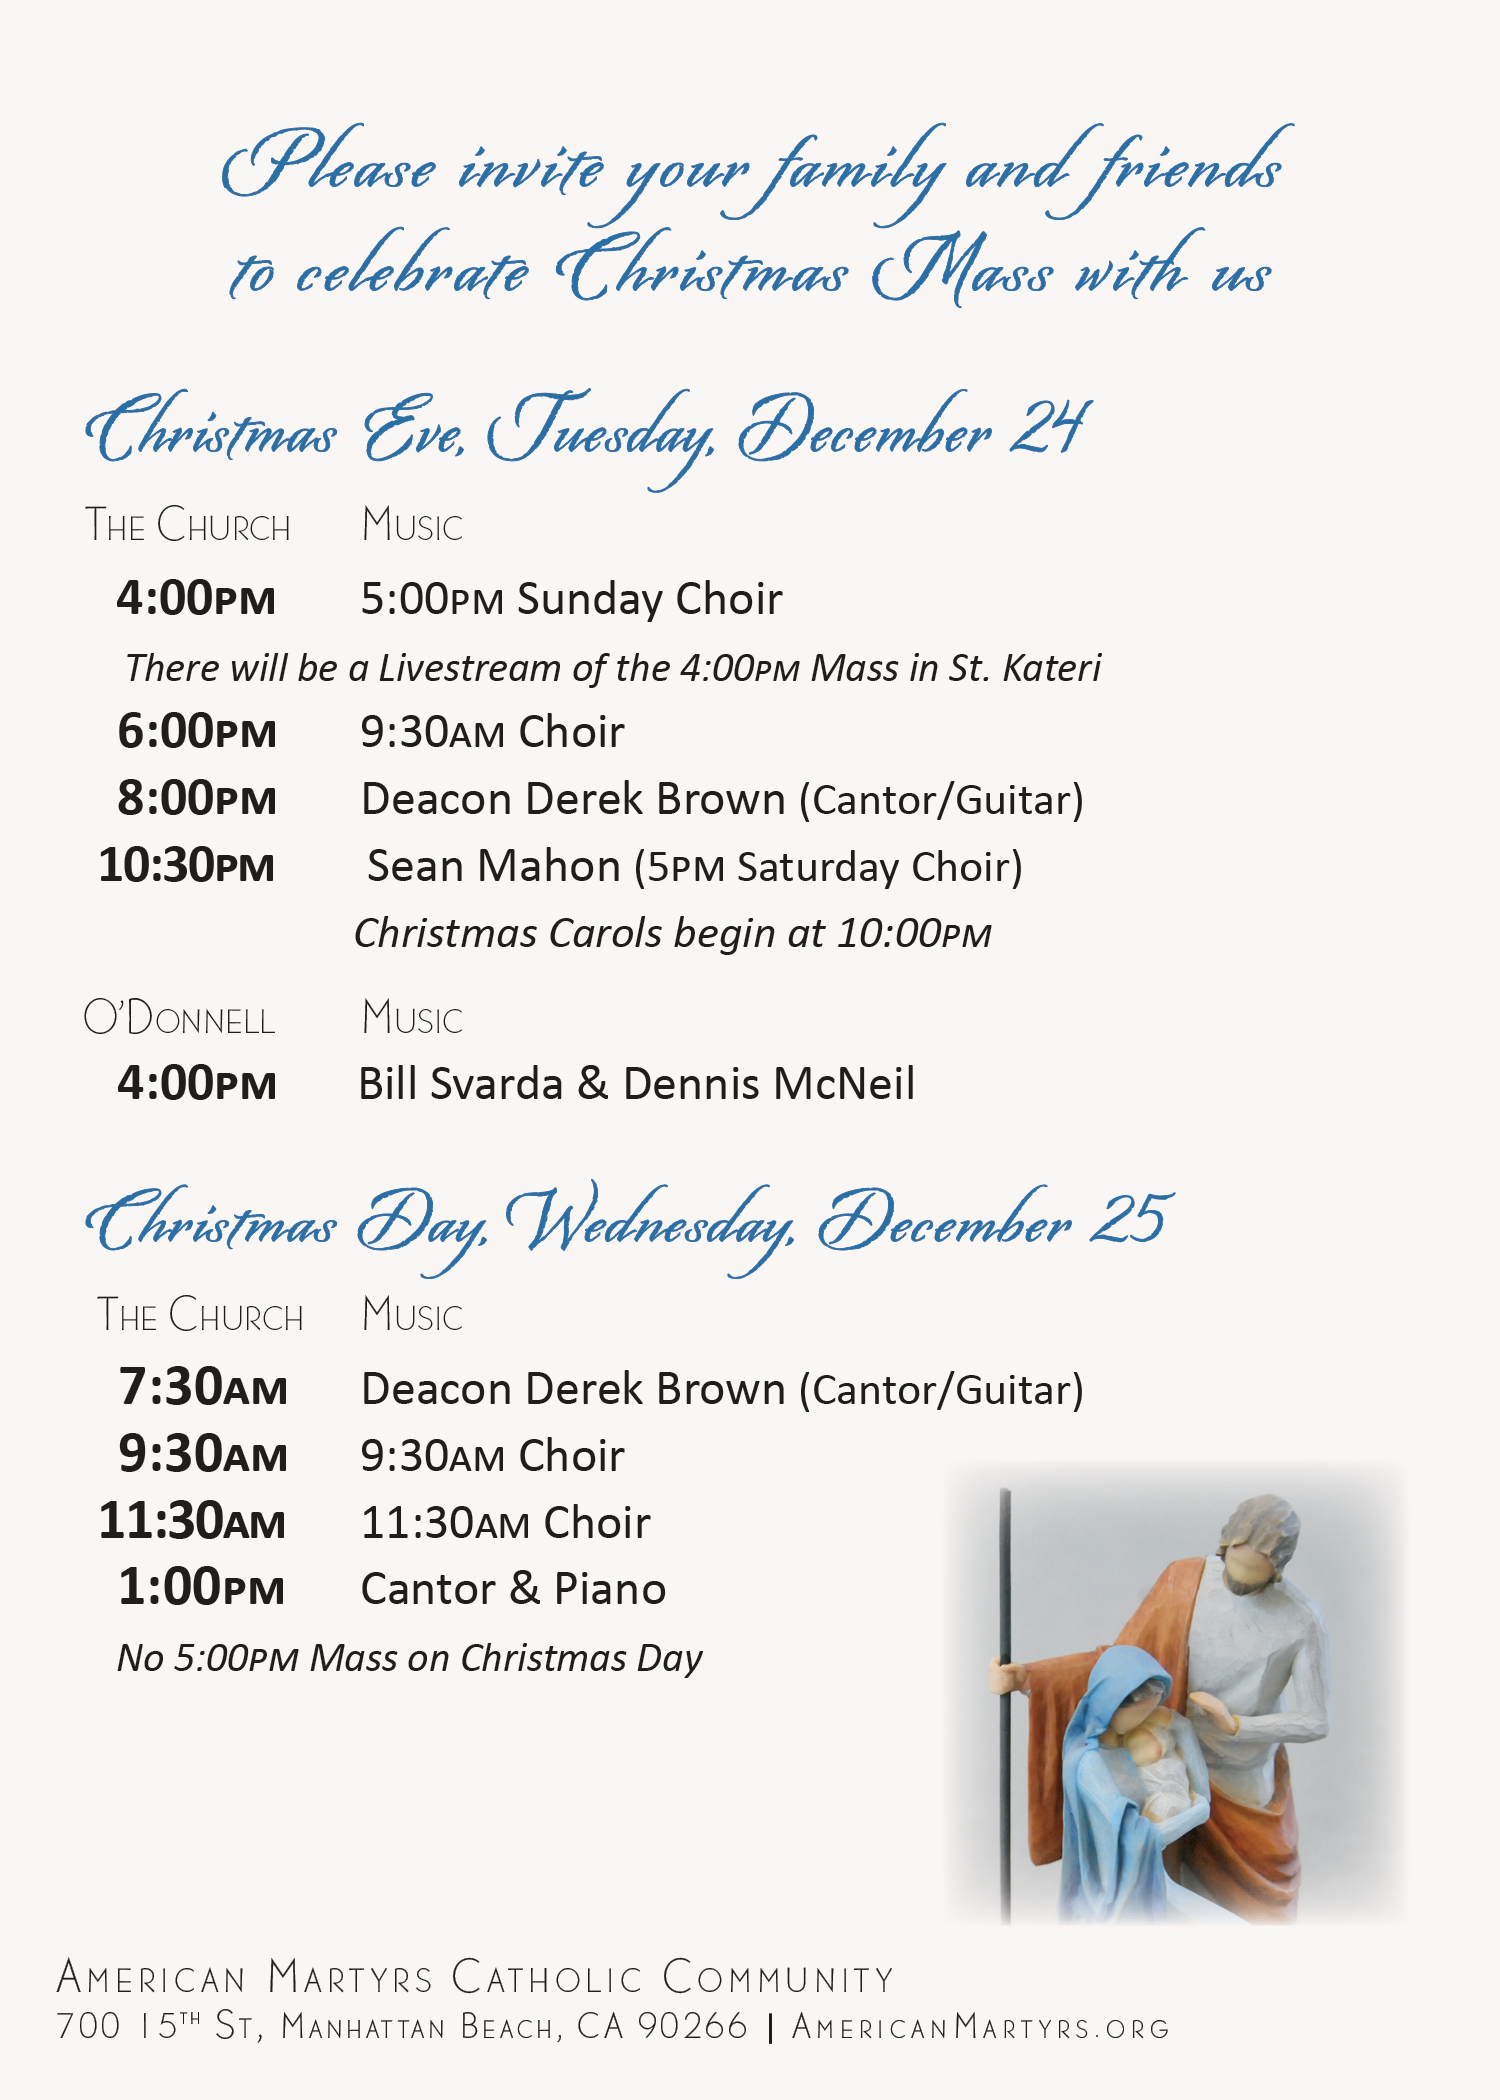 Invite family and friends to join us for Christmas Mass! Image